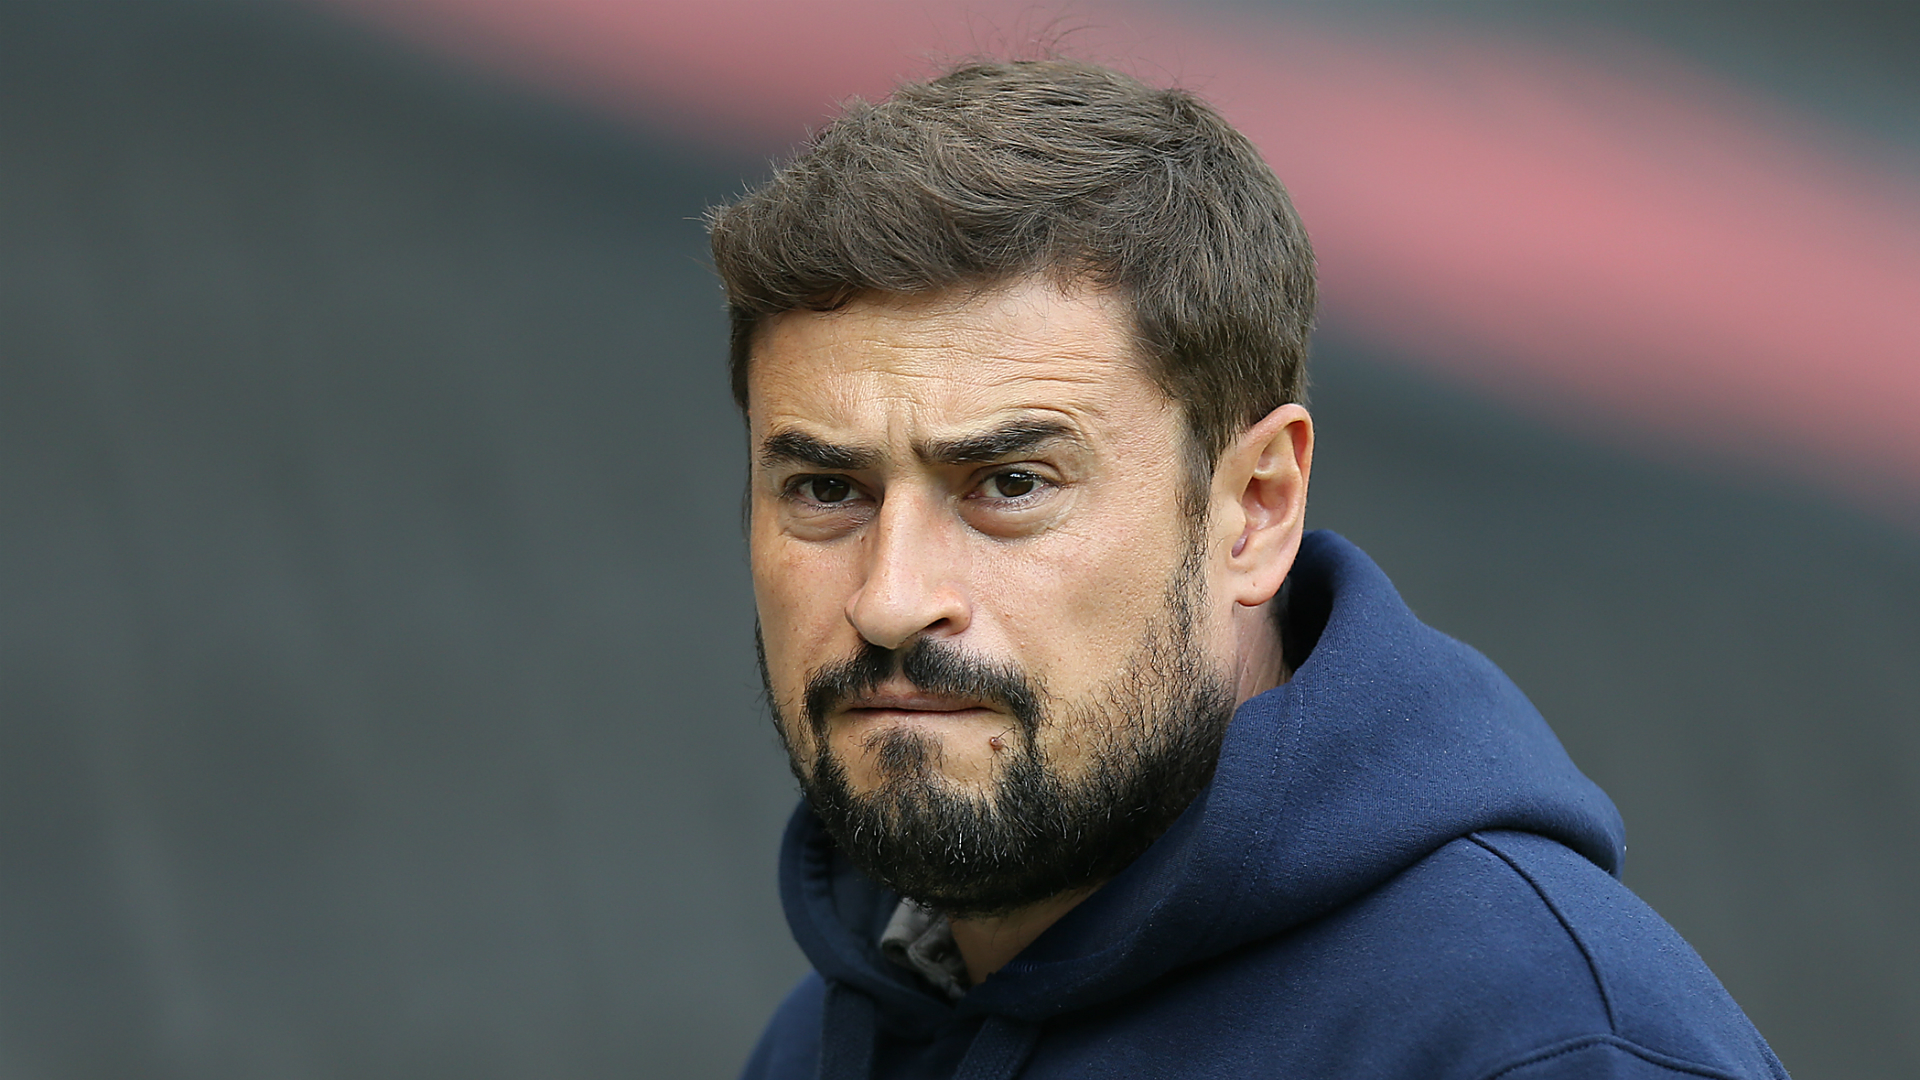 After sacking Garry Monk, Championship side Birmingham City have revealed their new management team, led by Pep Clotet, will stay in charge.